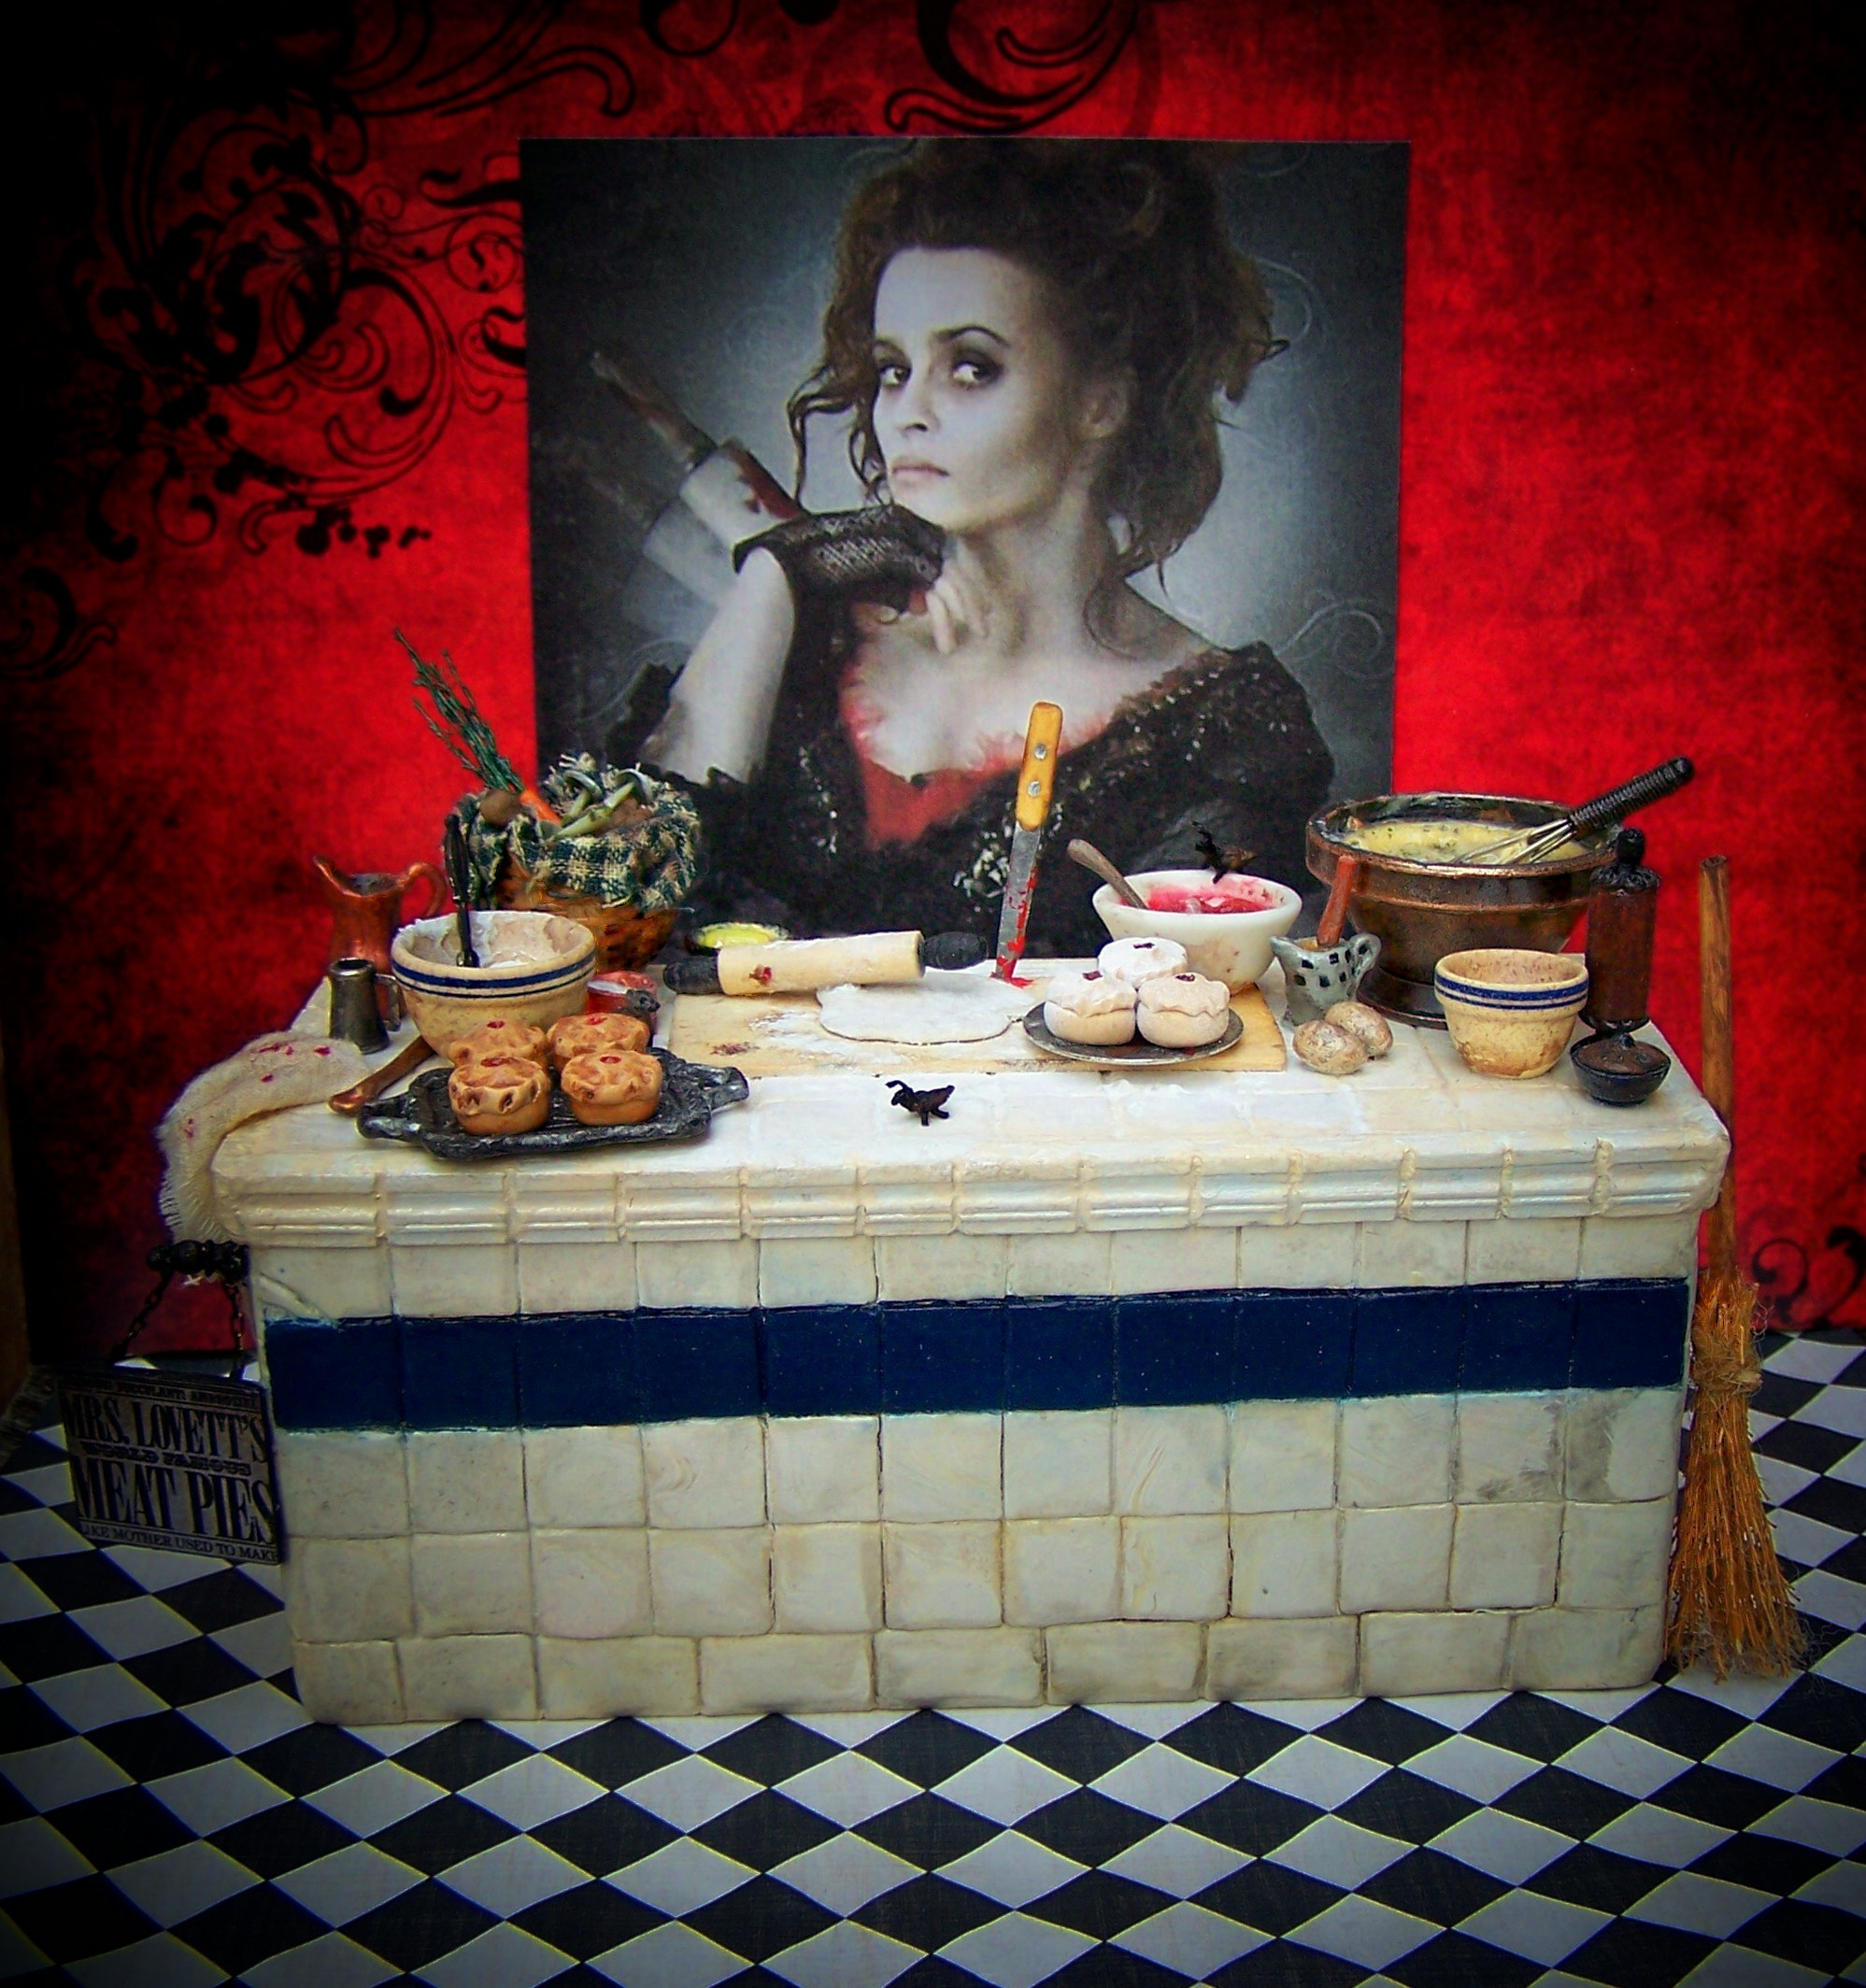 19th دن Miniatures version of Mrs. Lovett's Meat Pie Counter